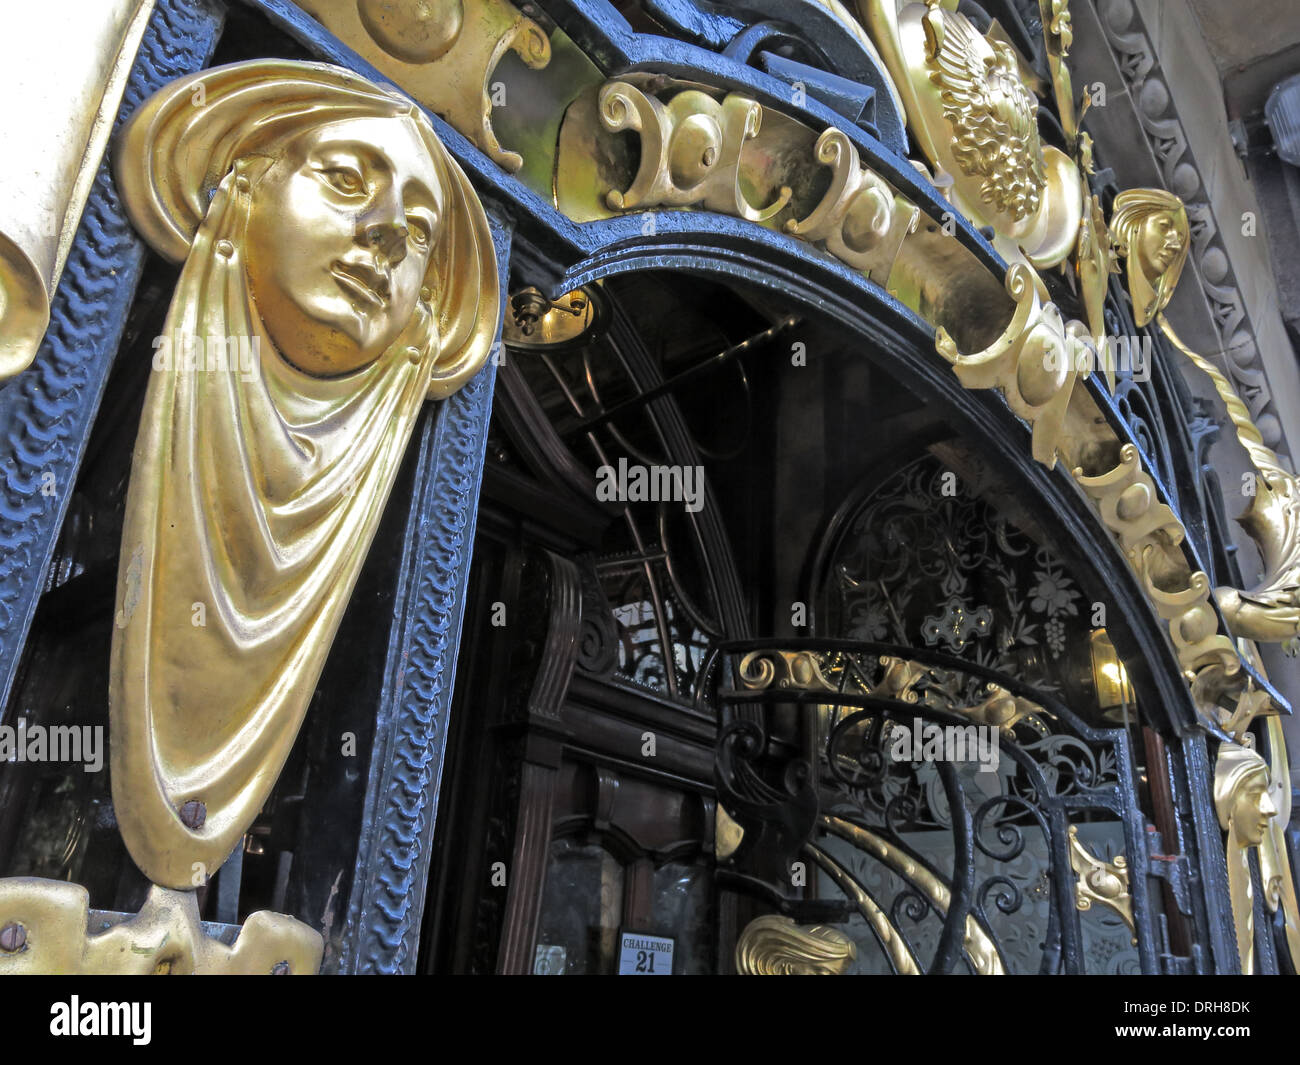 Ornate gold entrance to the Philharmonic Dining Rooms in Hope St, Liverpool,  England UK - Stock Image